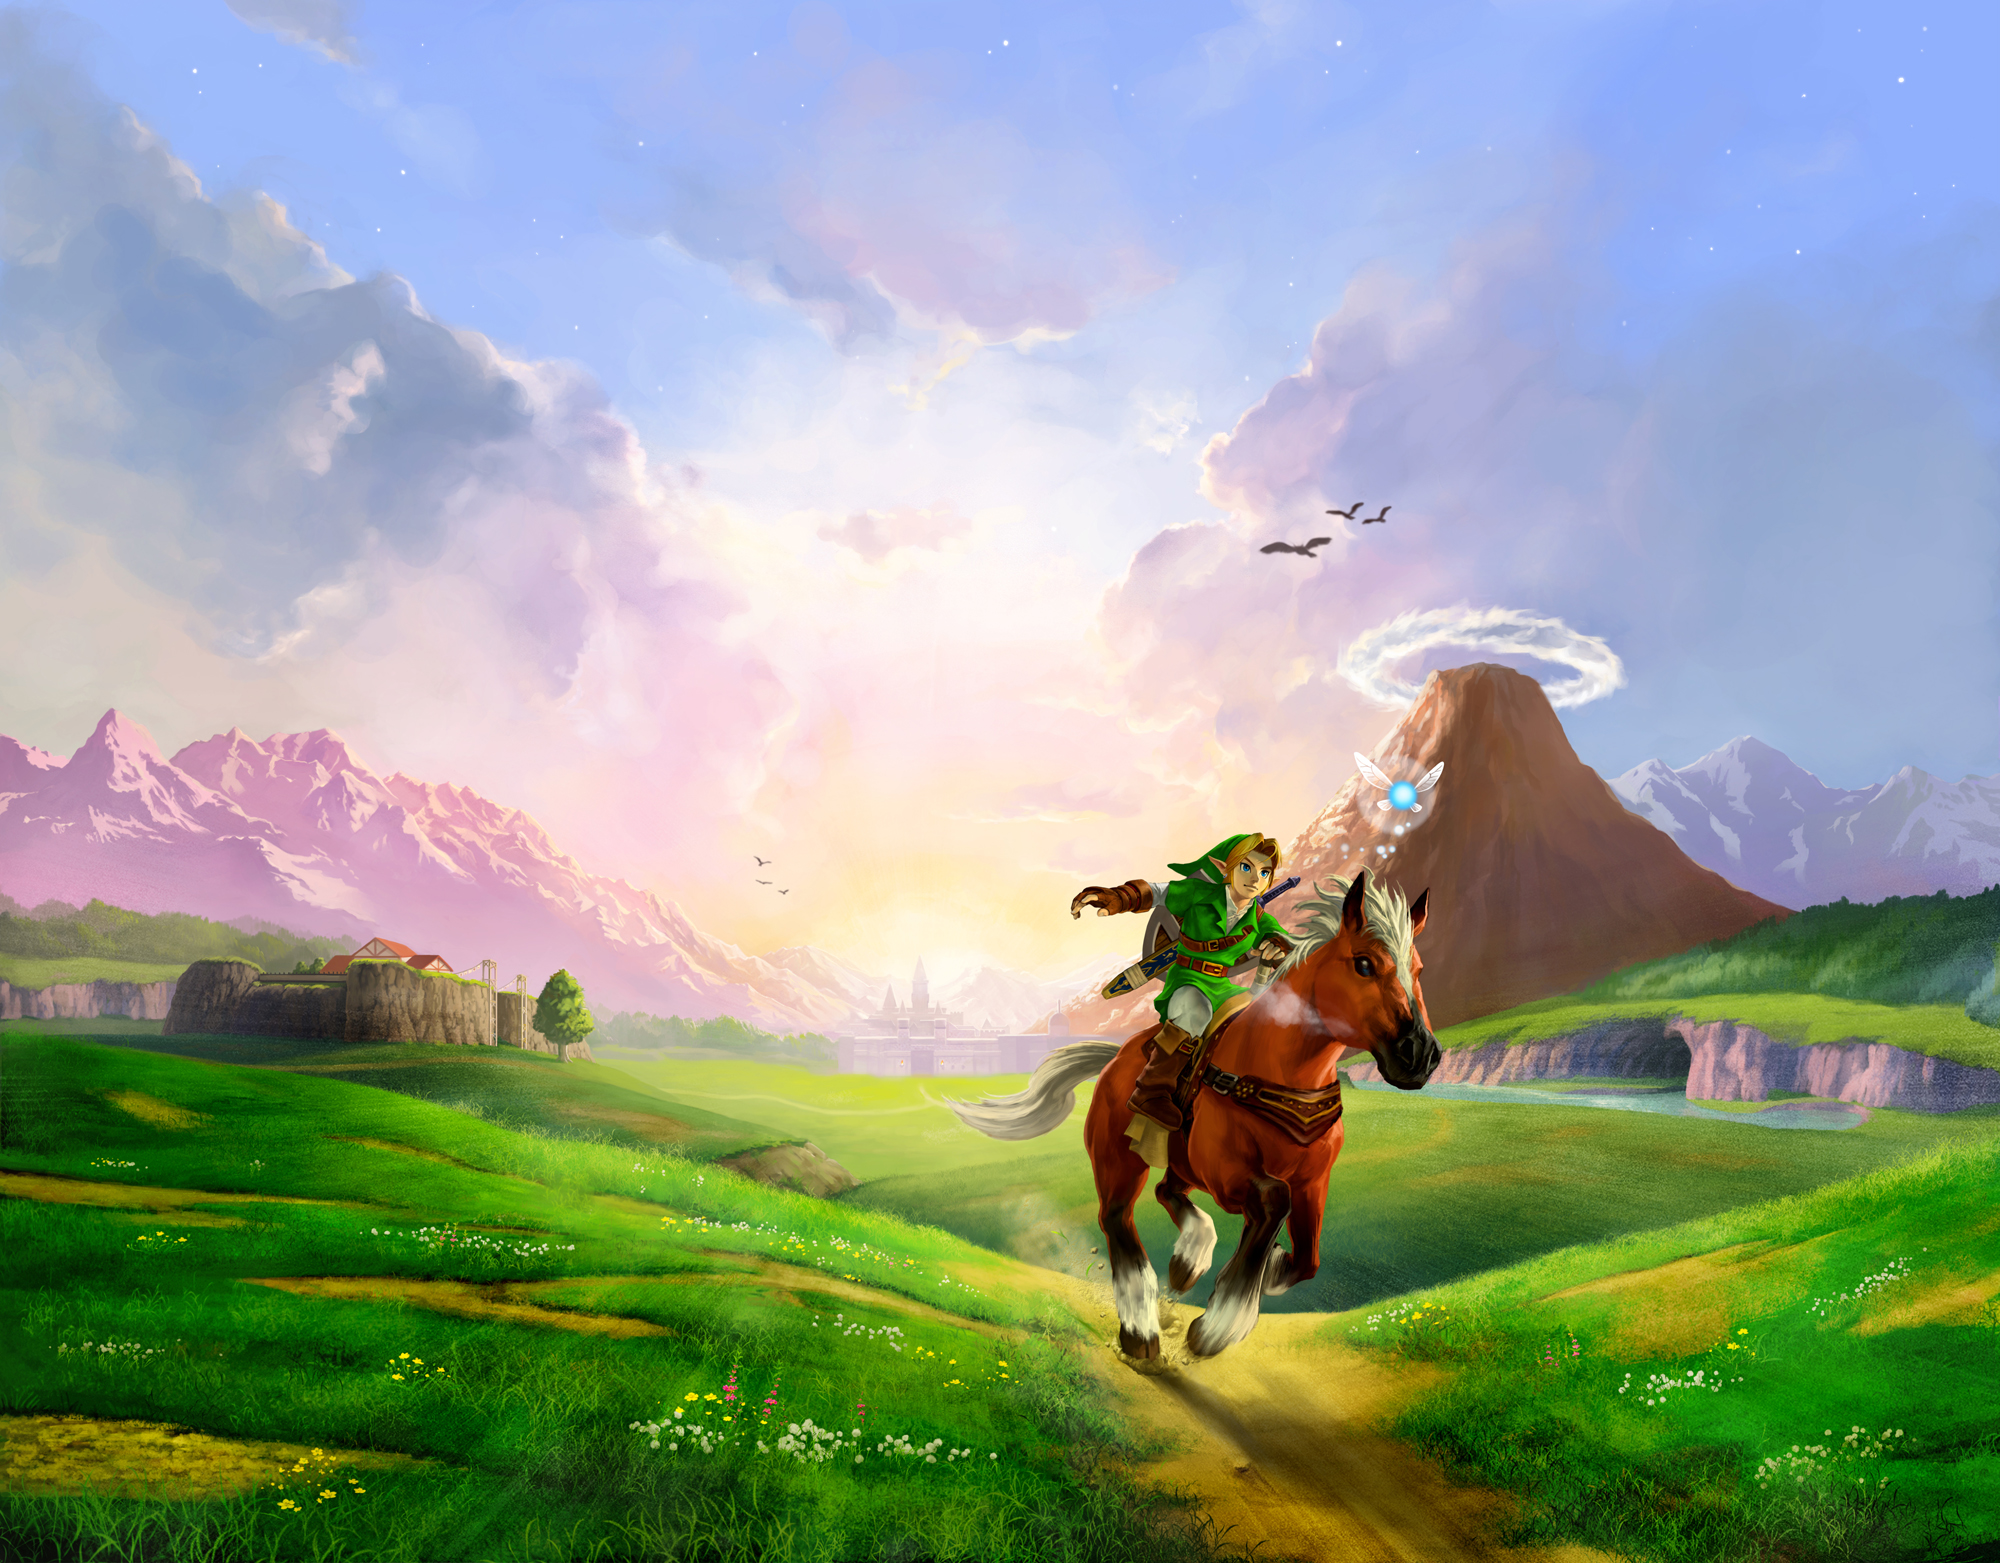 Zelda: Ocarina of Time's Hyrule Field changed how we think about game worlds